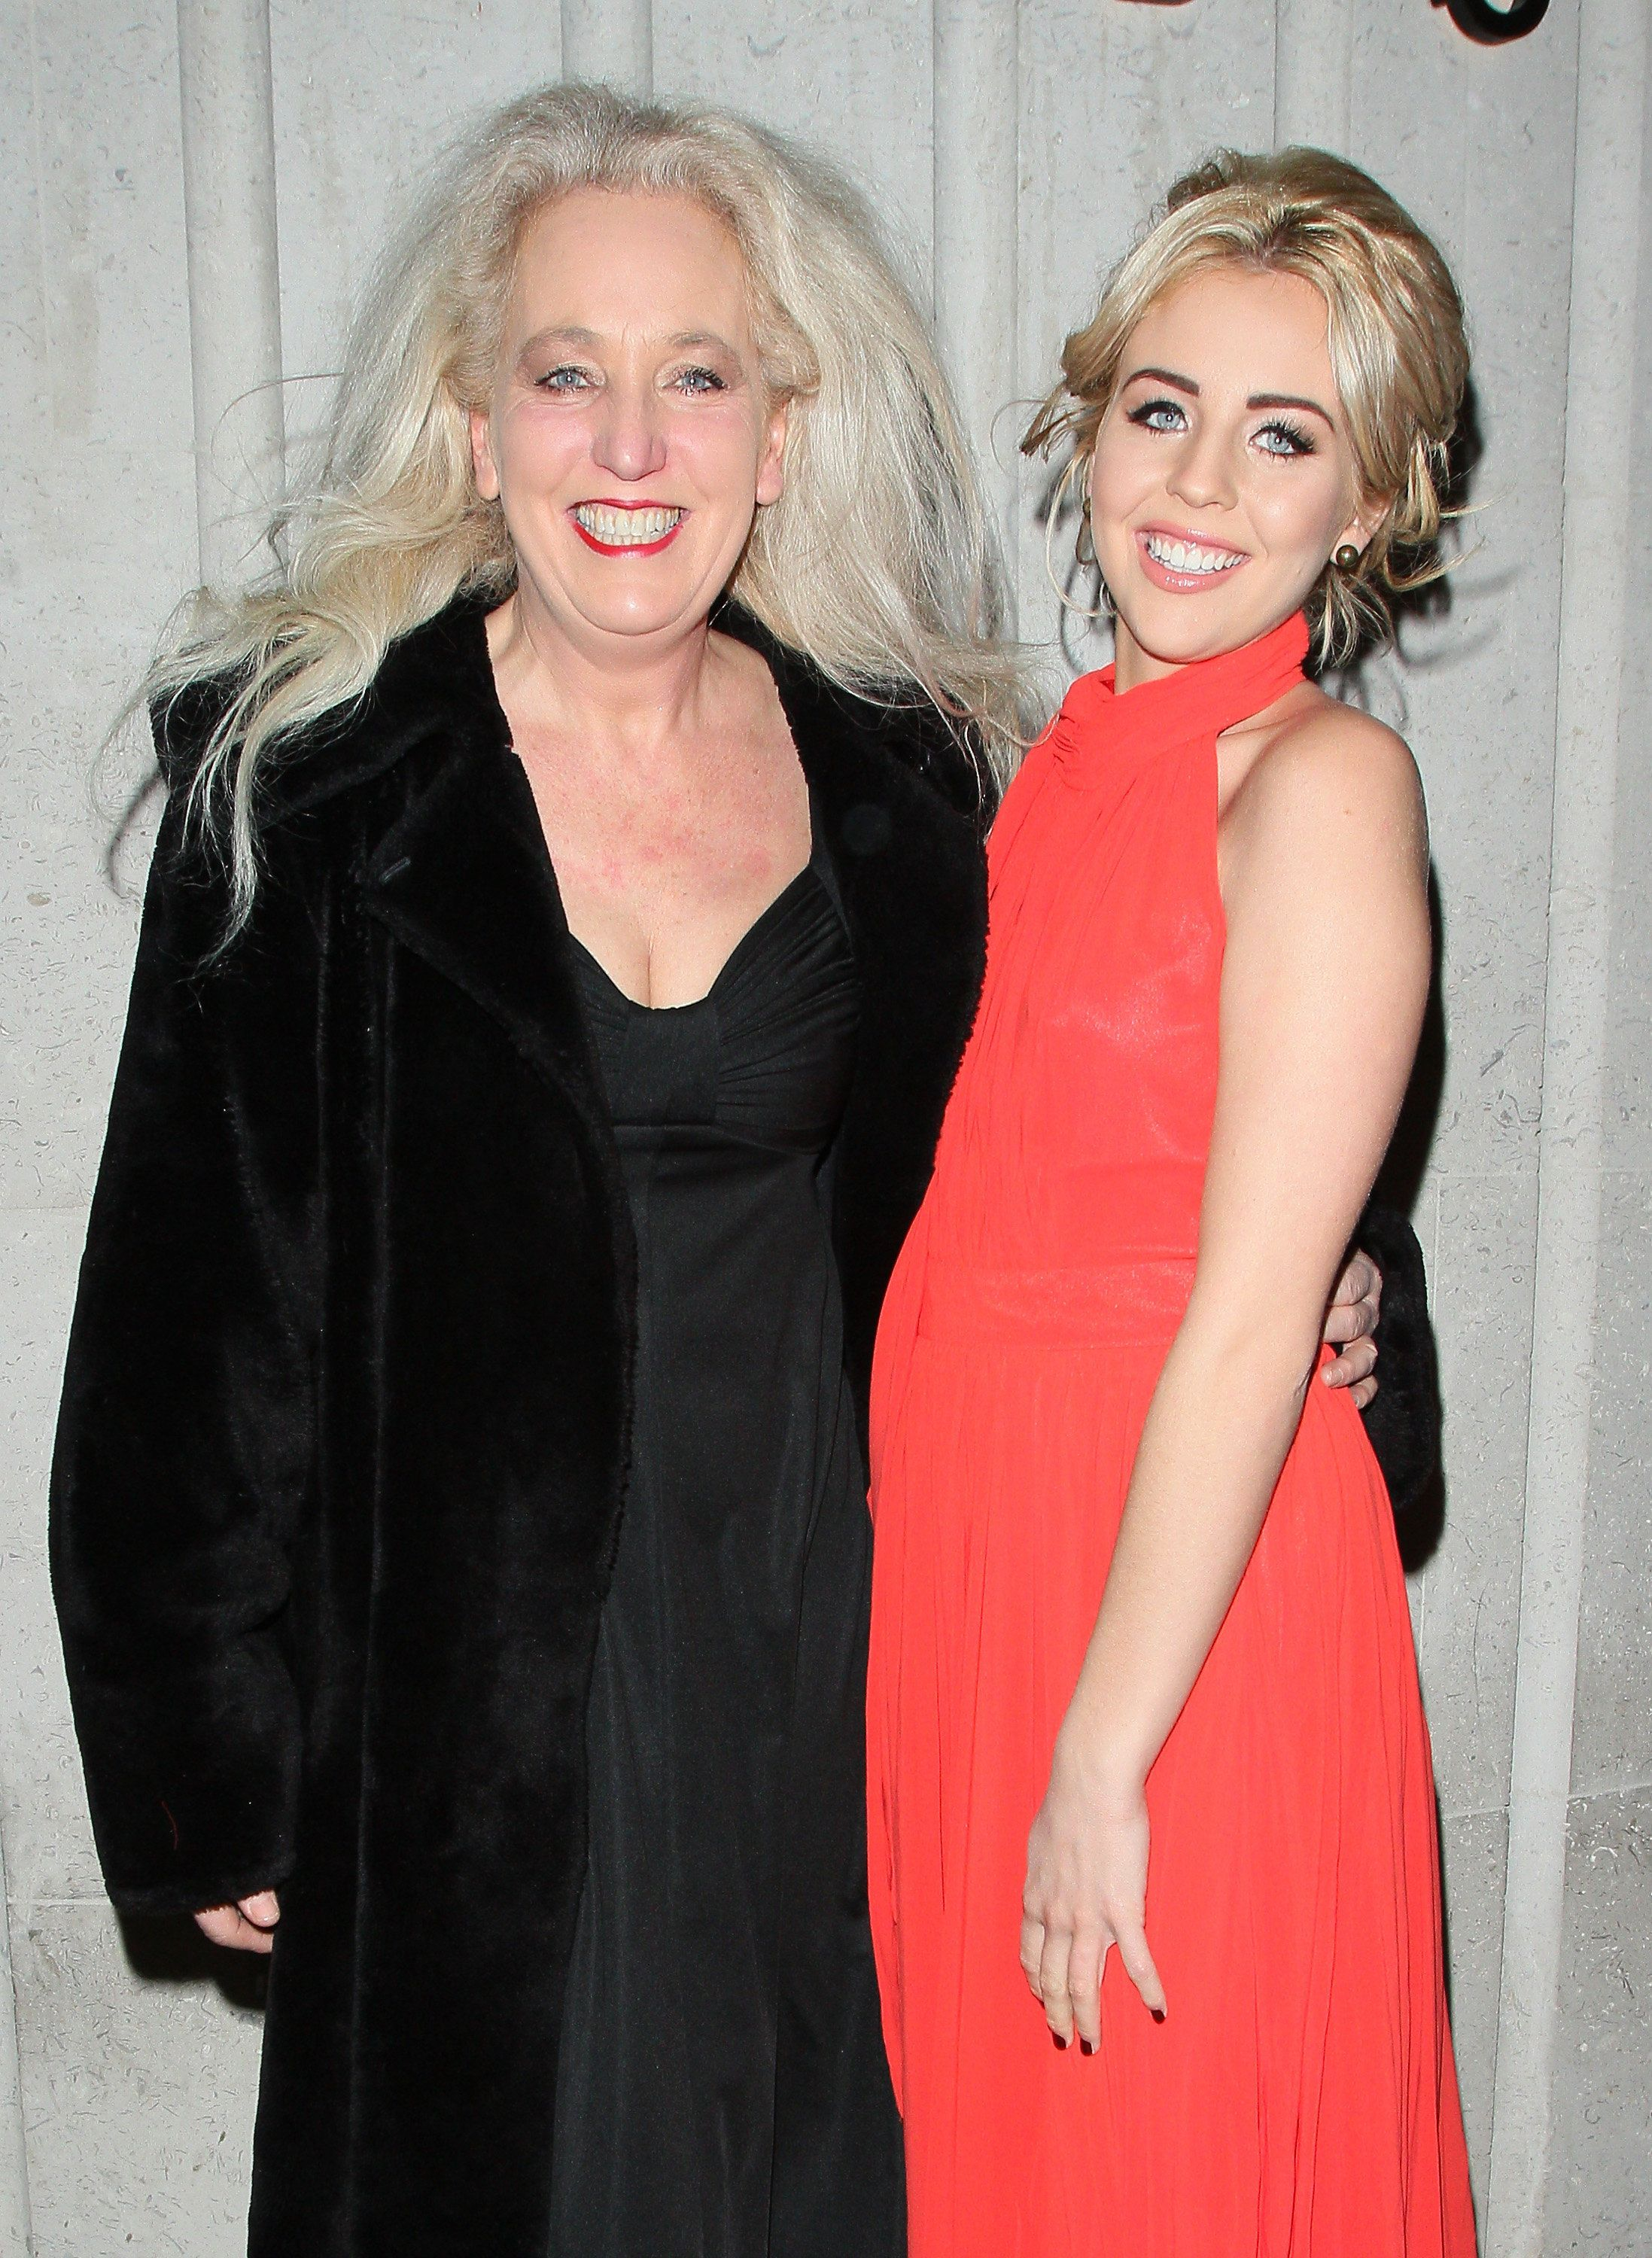 TOWIE's Lydia Bright On Why She Had To Ban Her Own Mum From Her Essex